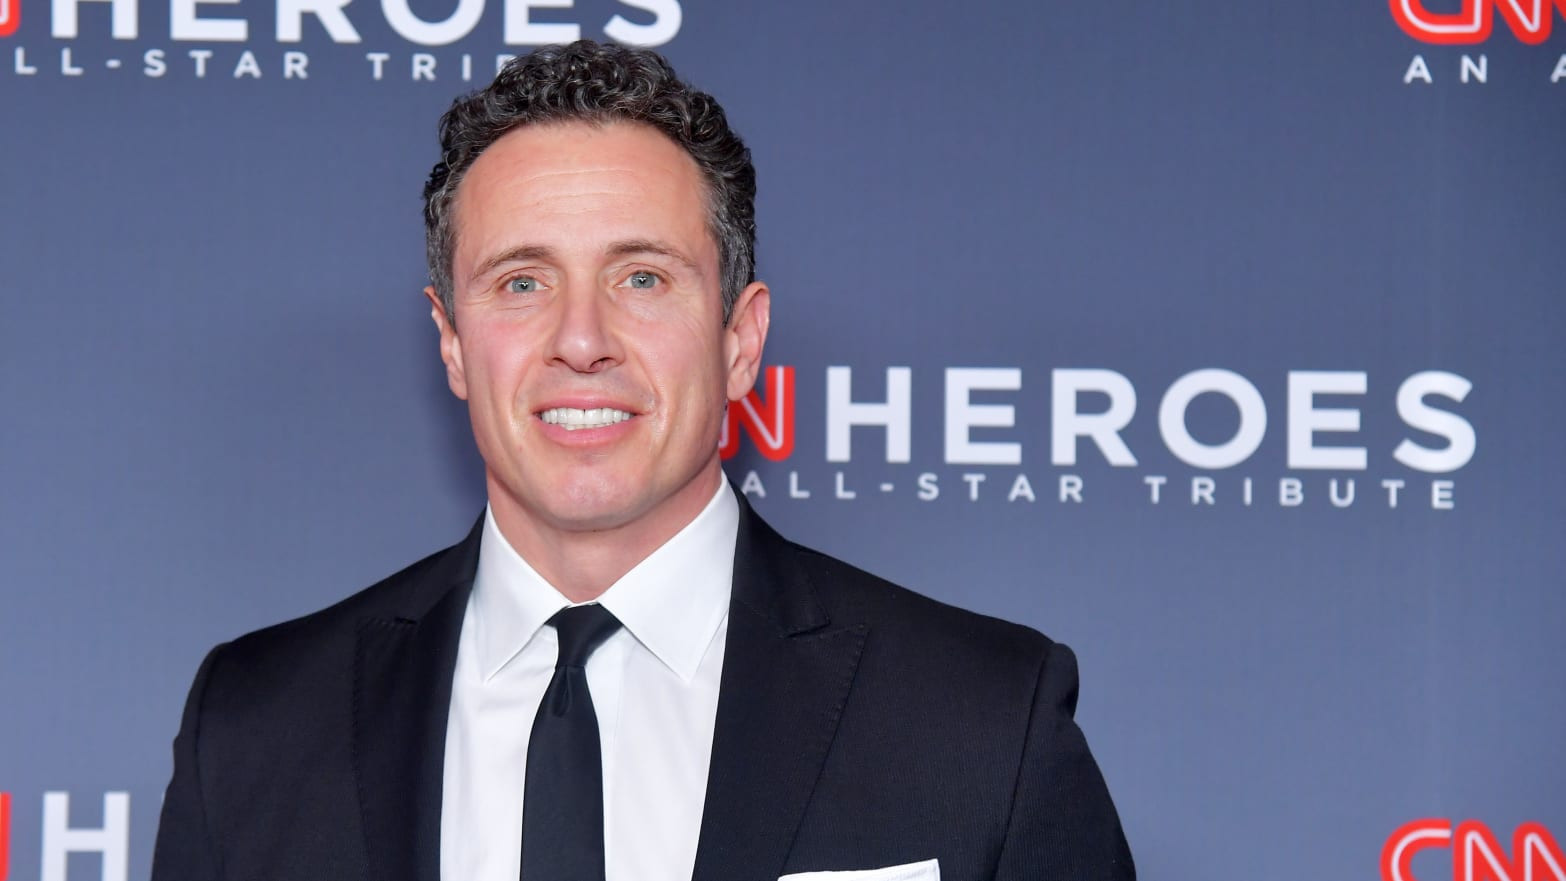 CNN host, Chris Cuomo tests positive for Coronavirus